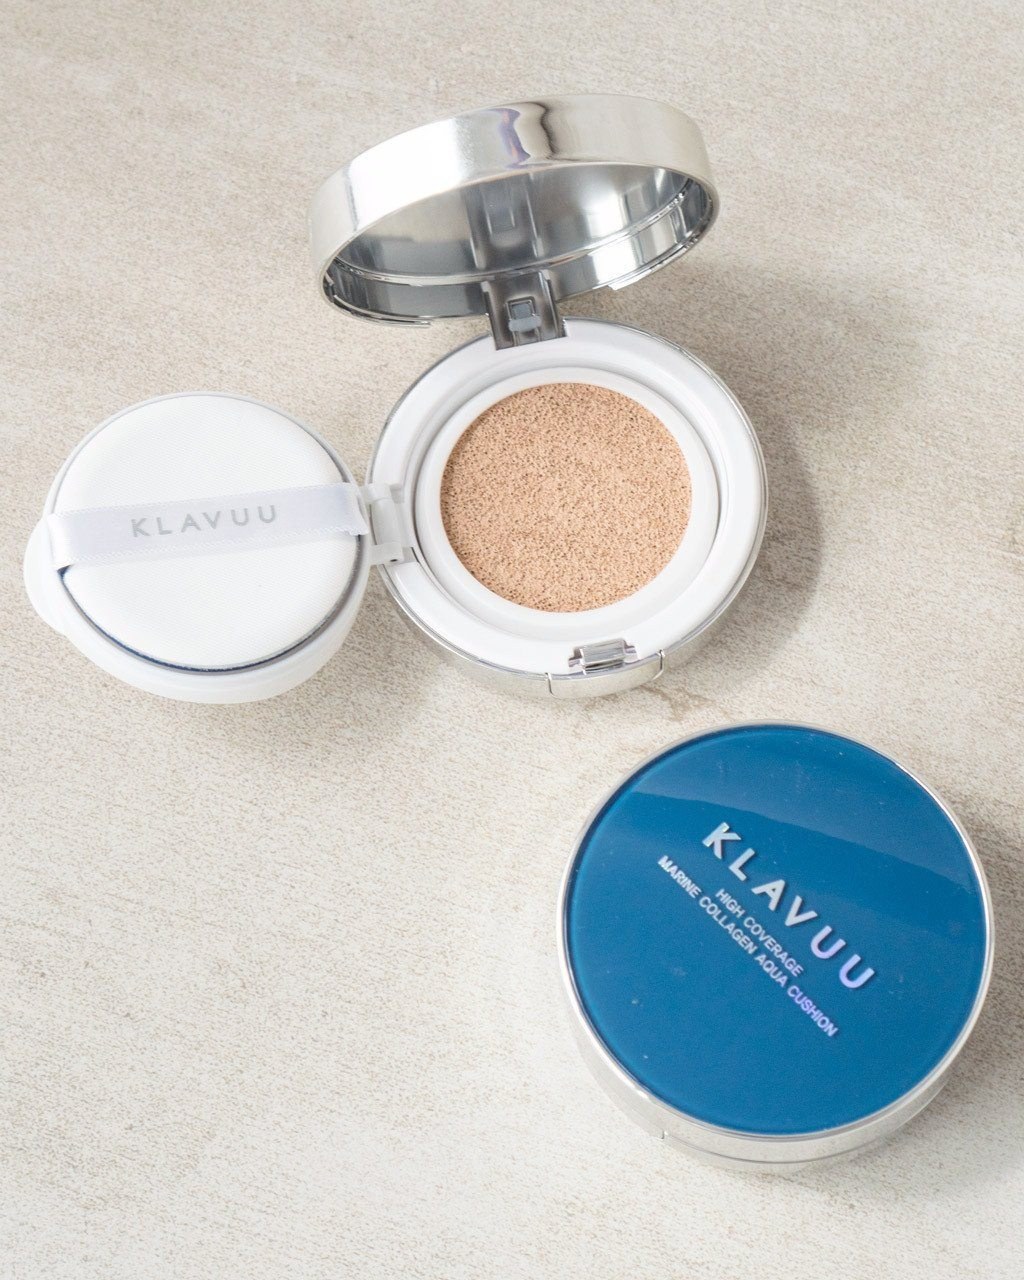 KLAVUU High Coverage Marine Collagen Aqua Cushion [SPF50+/PA+++], foundation, makeup